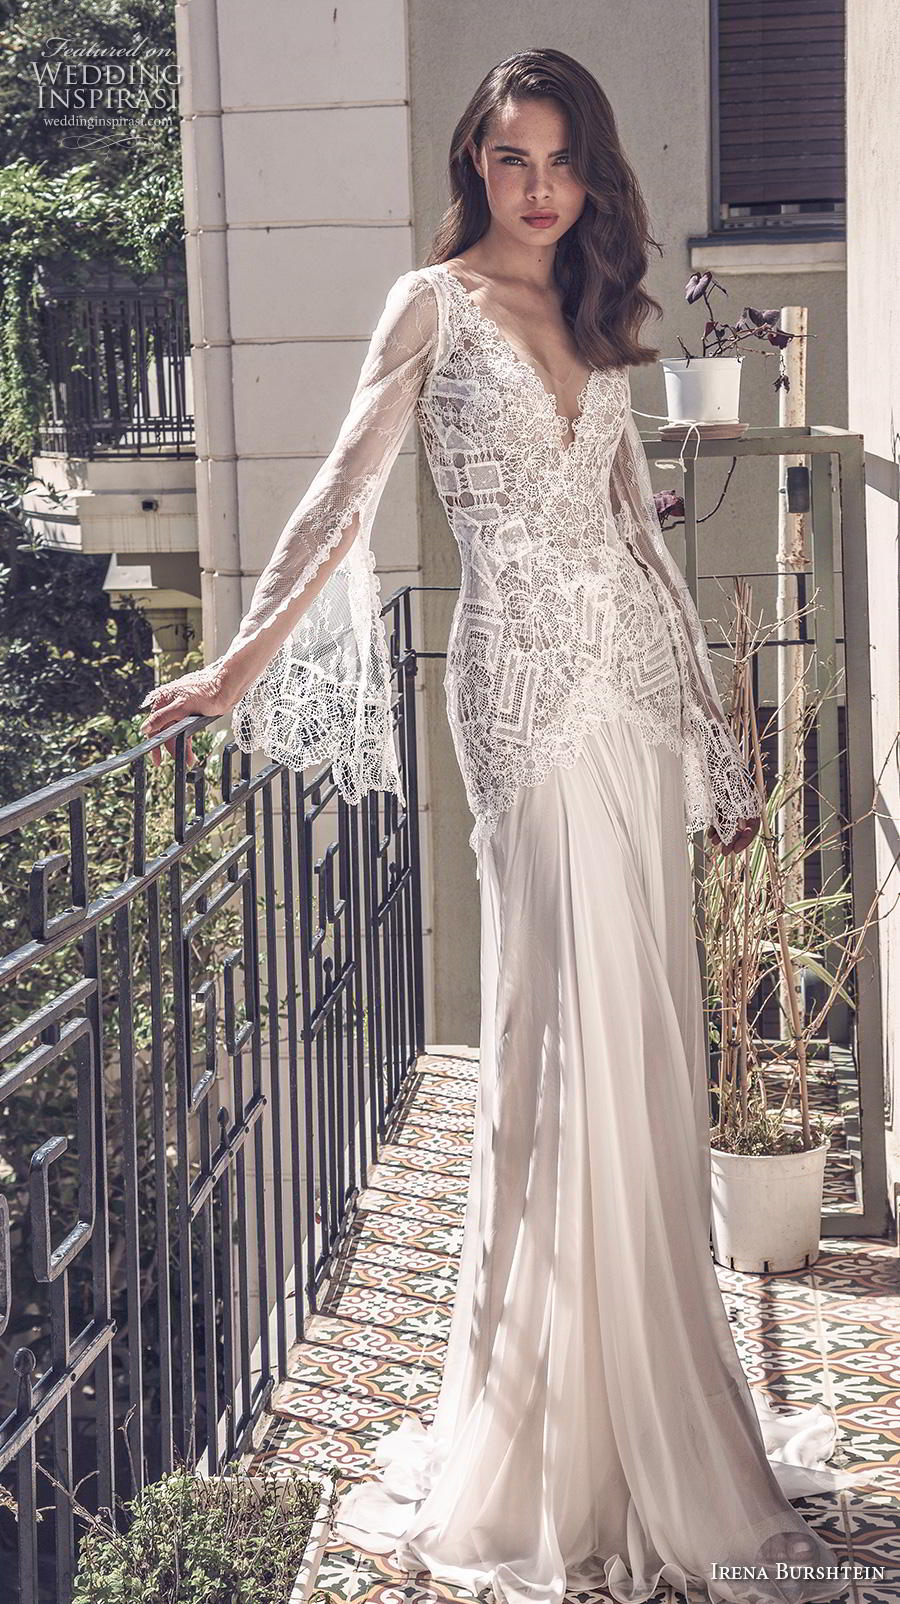 irena burshtein 2020 bridal long bell sleeves v neck heavily embellished bodice bohemian sheath wedding dress v back sweep train (3) mv